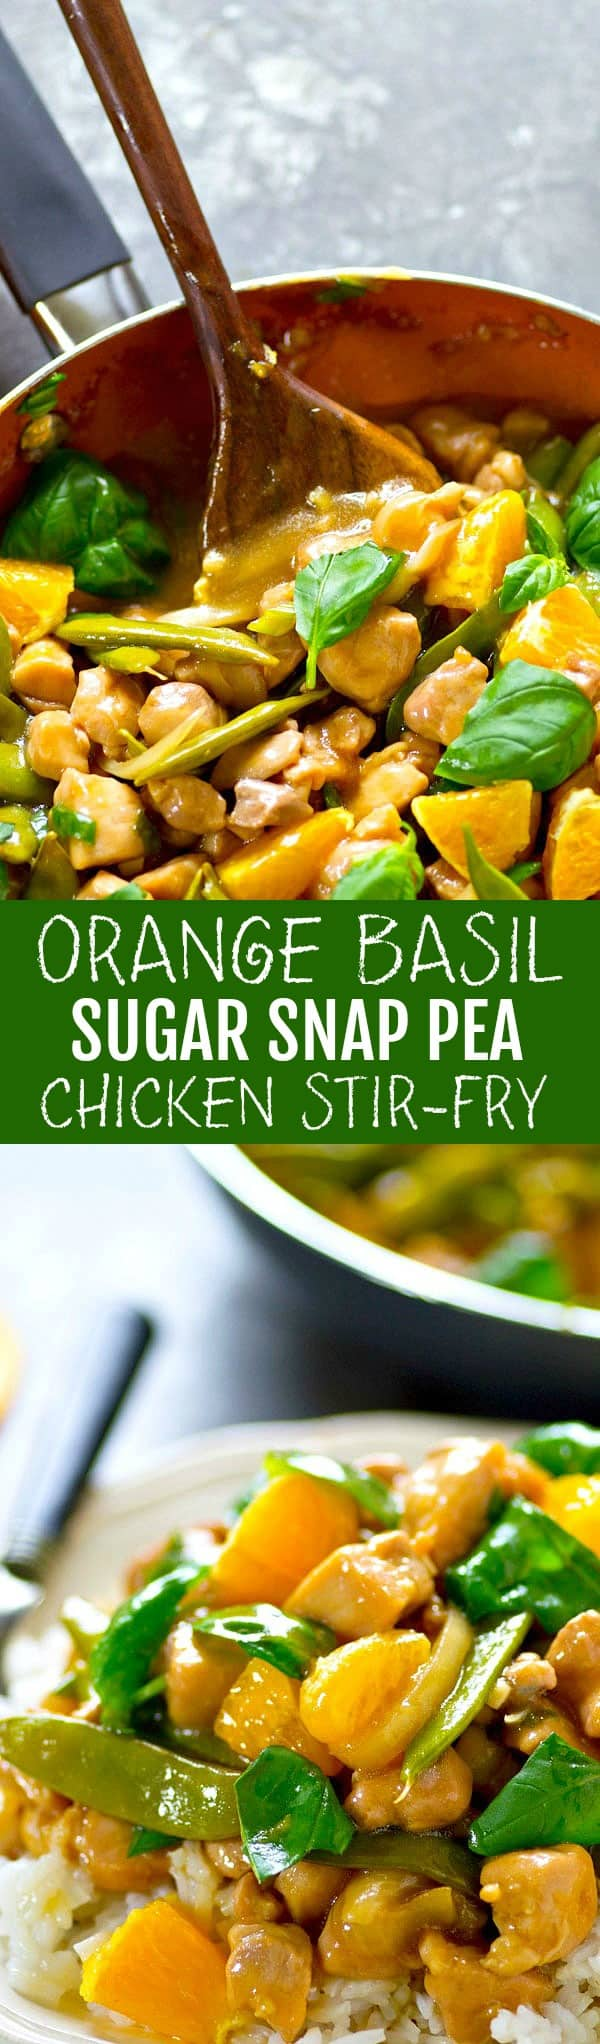 Tangy orange and flavorful basil are a game-changing combo in this sweet, saucy sugar snap pea chicken stir-fry! Add this winner to your stir-fry rotation.